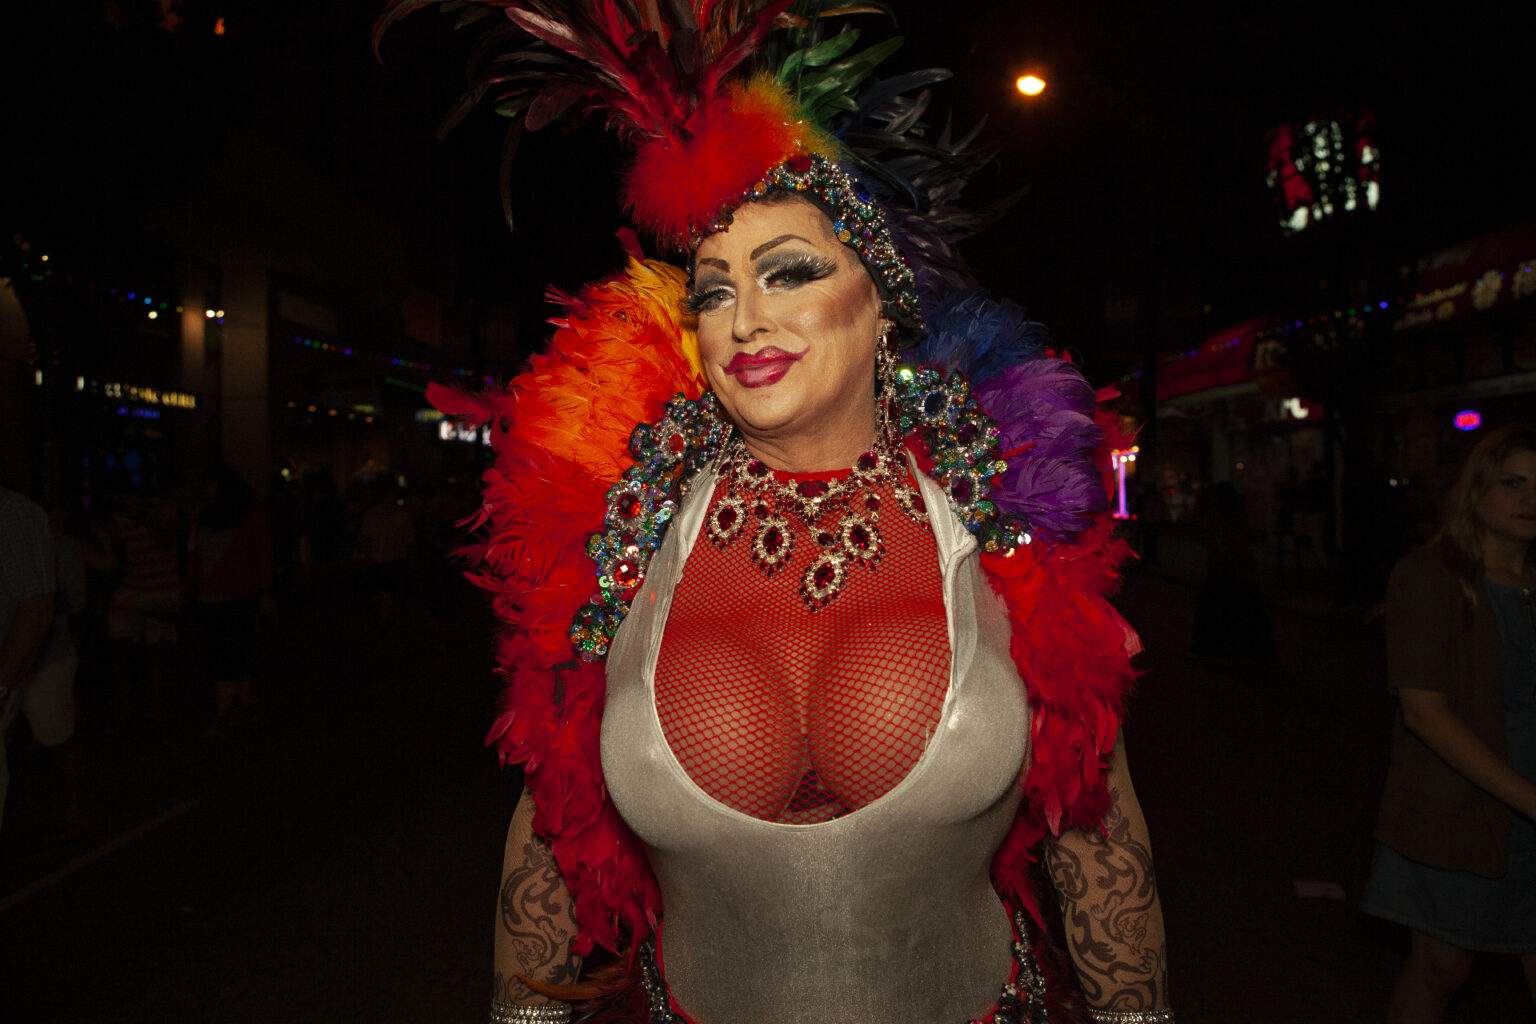 Jewels and feathers, Vancouver Pride, Canada, 2014